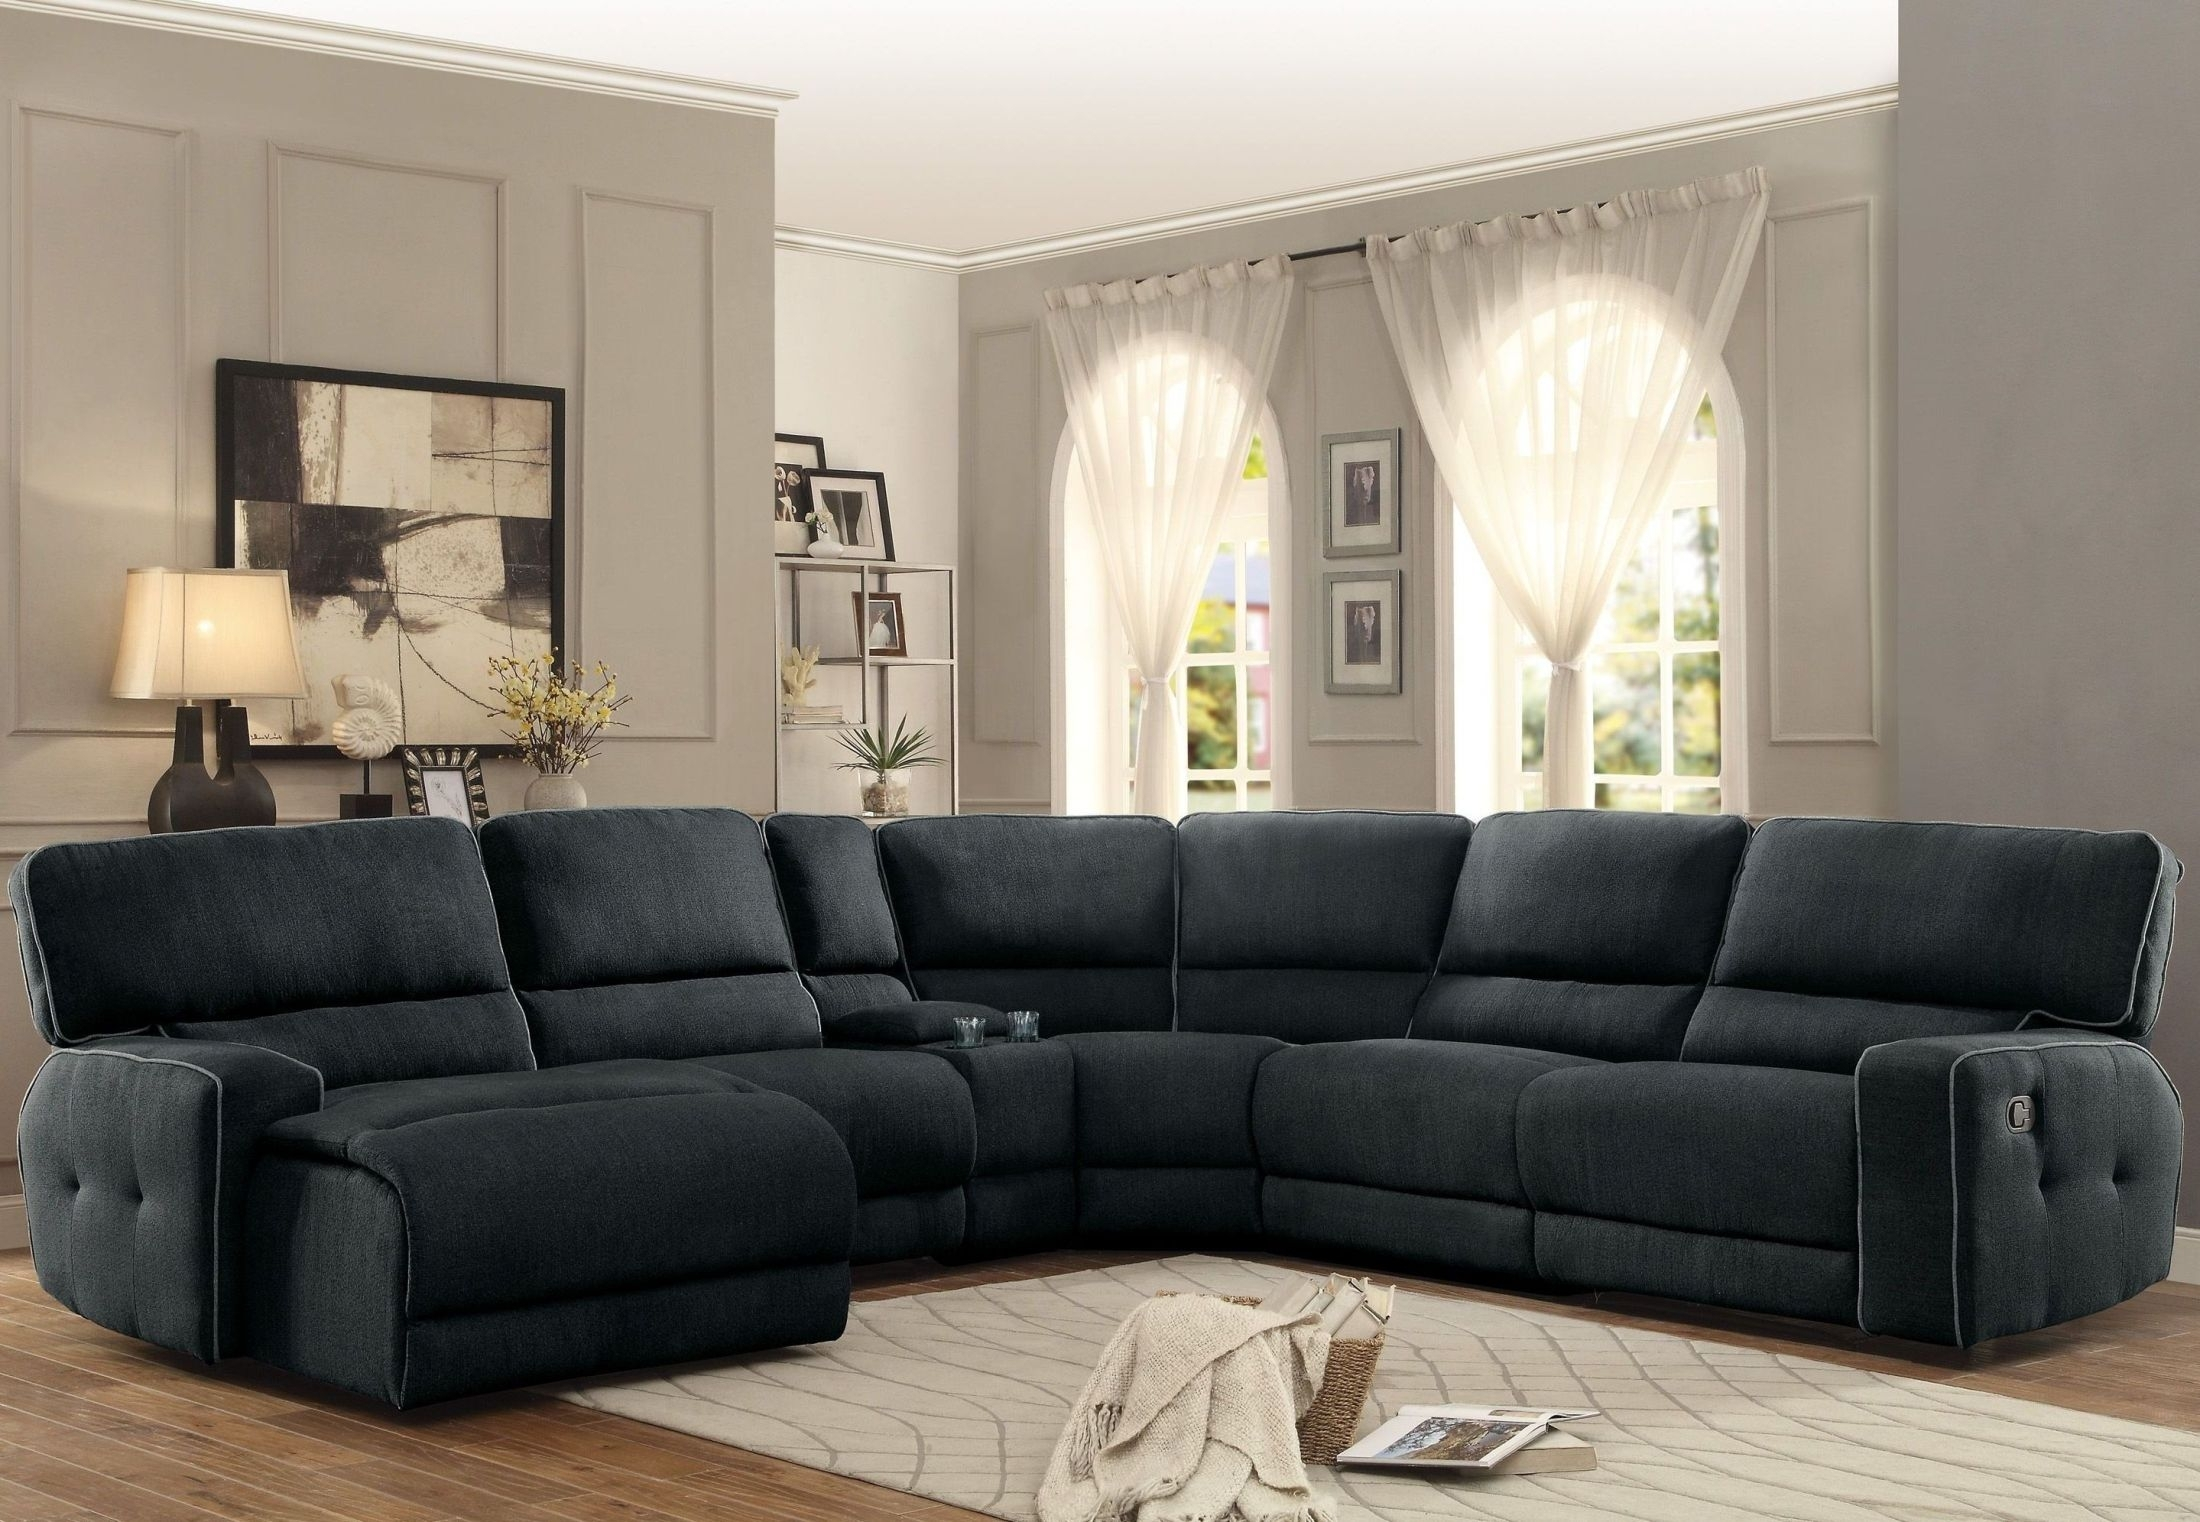 Furnitureetc | Furniture & More Keamey Gray Laf Reclining Sectional In Avery 2 Piece Sectionals With Laf Armless Chaise (Image 14 of 25)